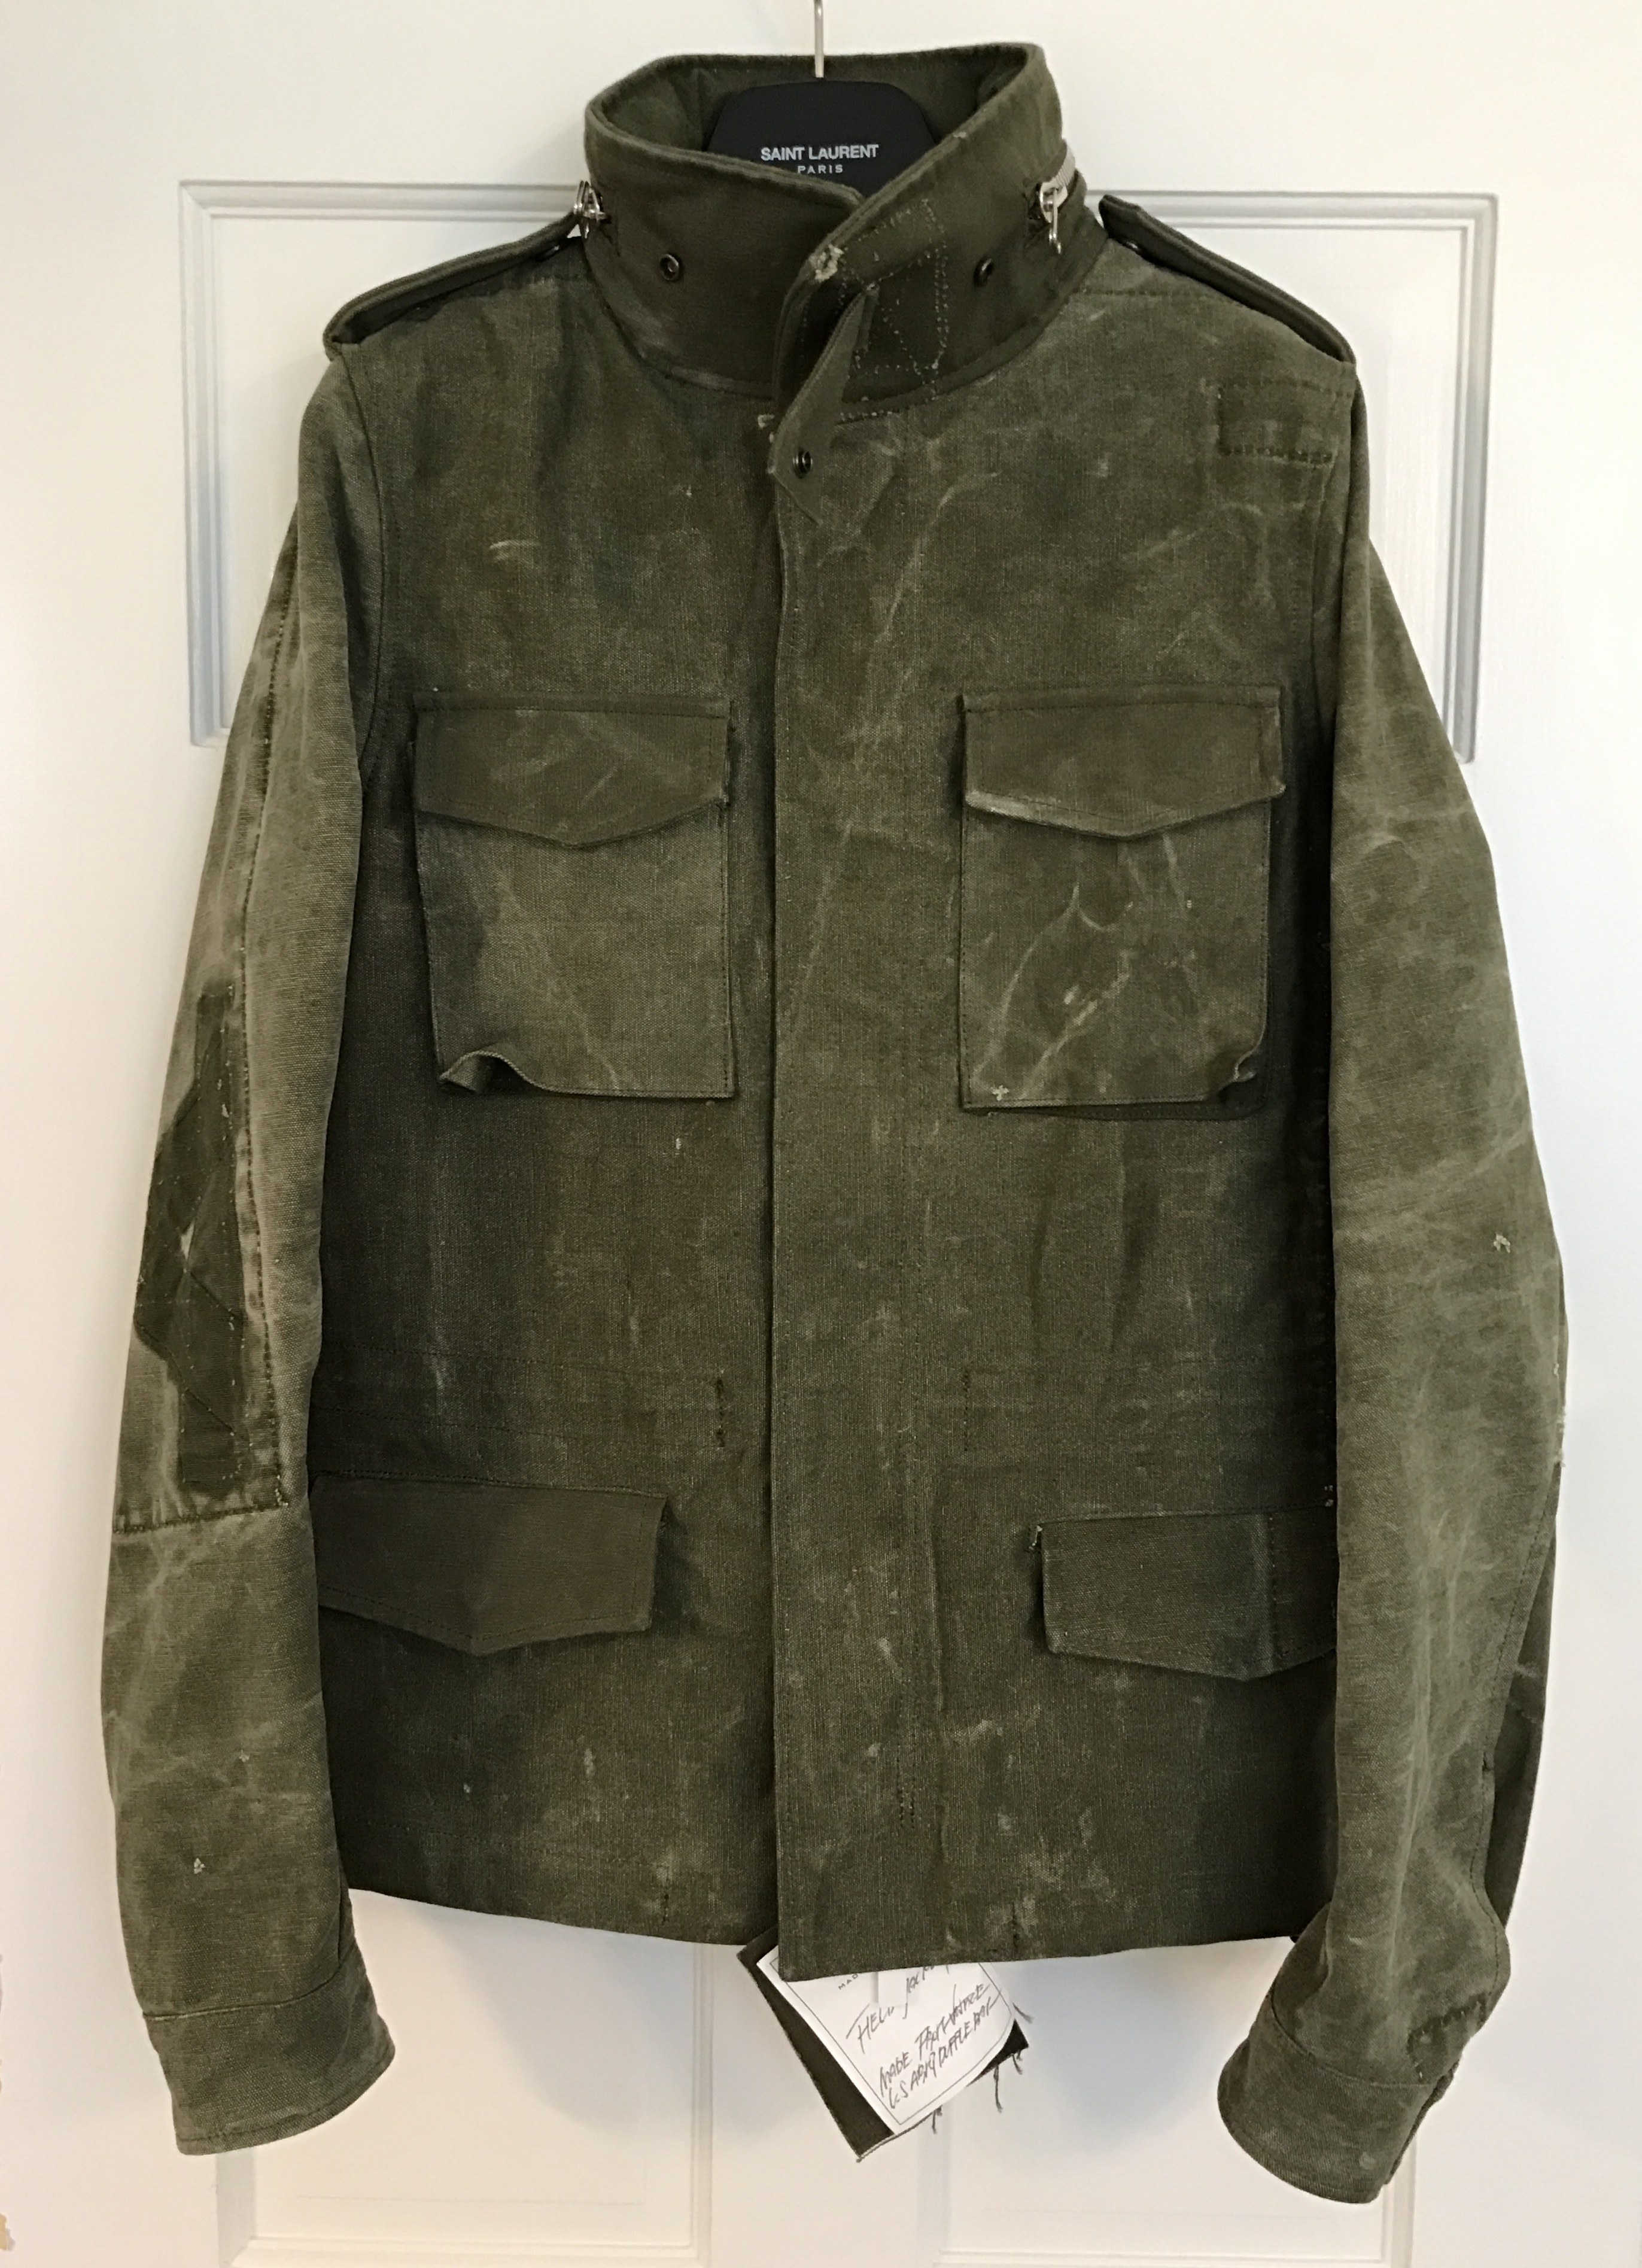 READYMADE M-65 Field Jacket BNWT (fits 44) Size xs - Light Jackets ... ad66942df30